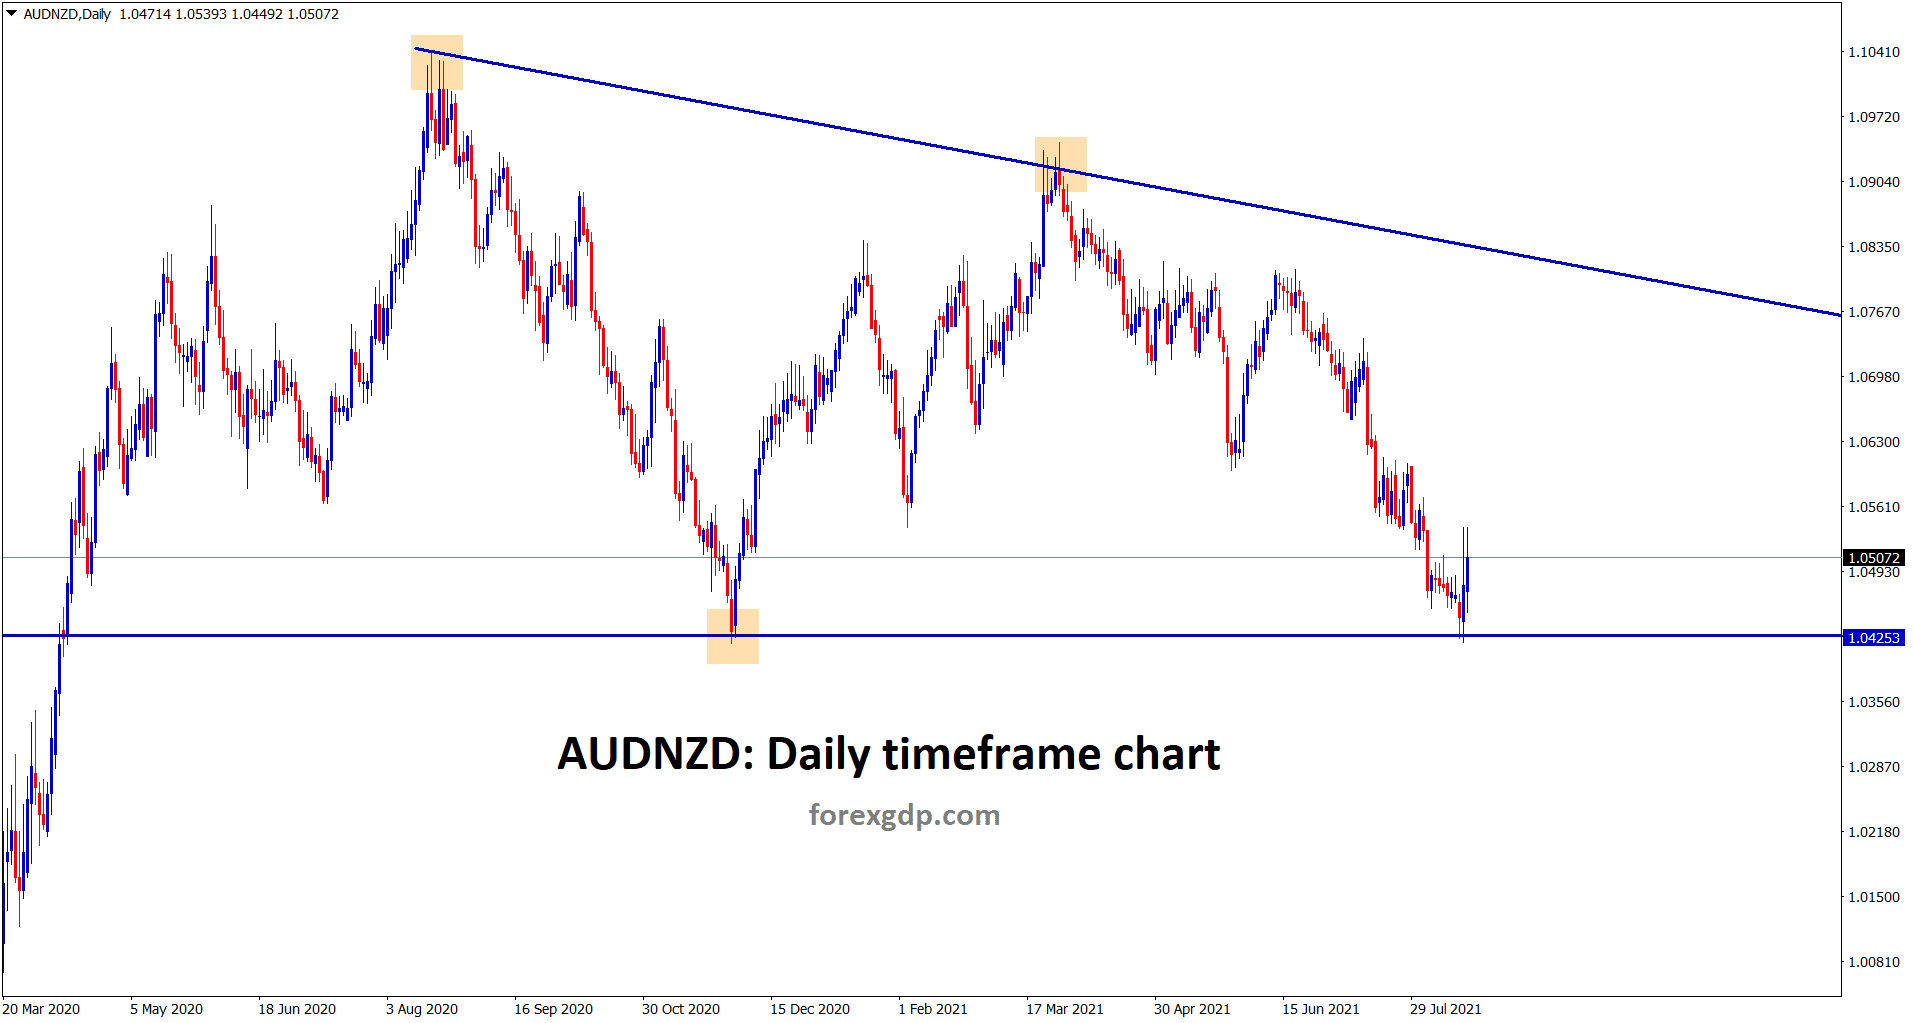 AUDNZD bounced back little up from the support area of the descending triangle